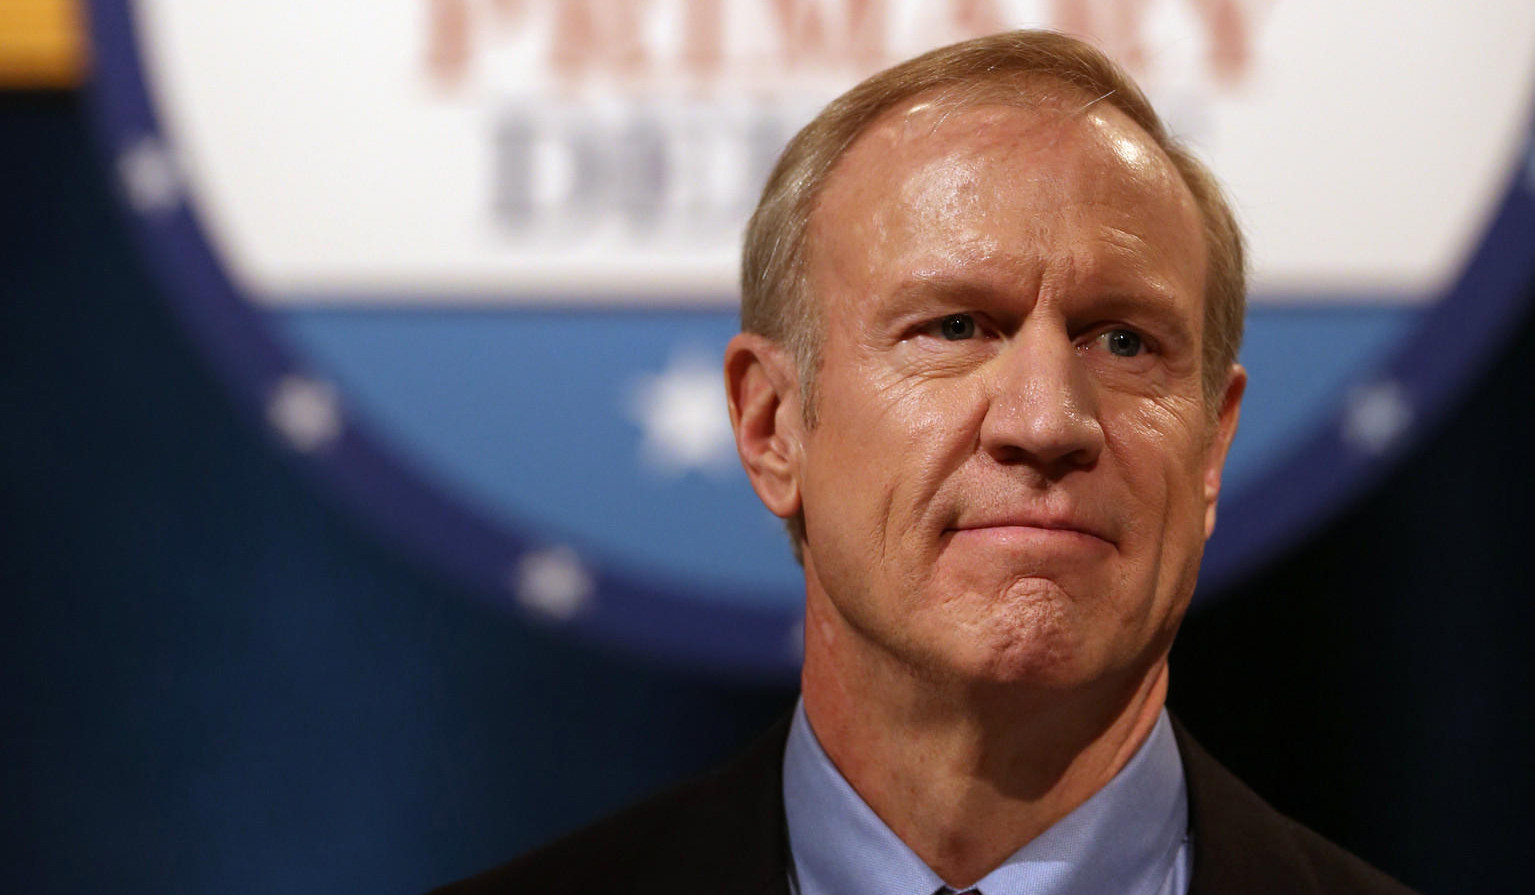 Governor Rauner To Attend Apple's School IPad Launch